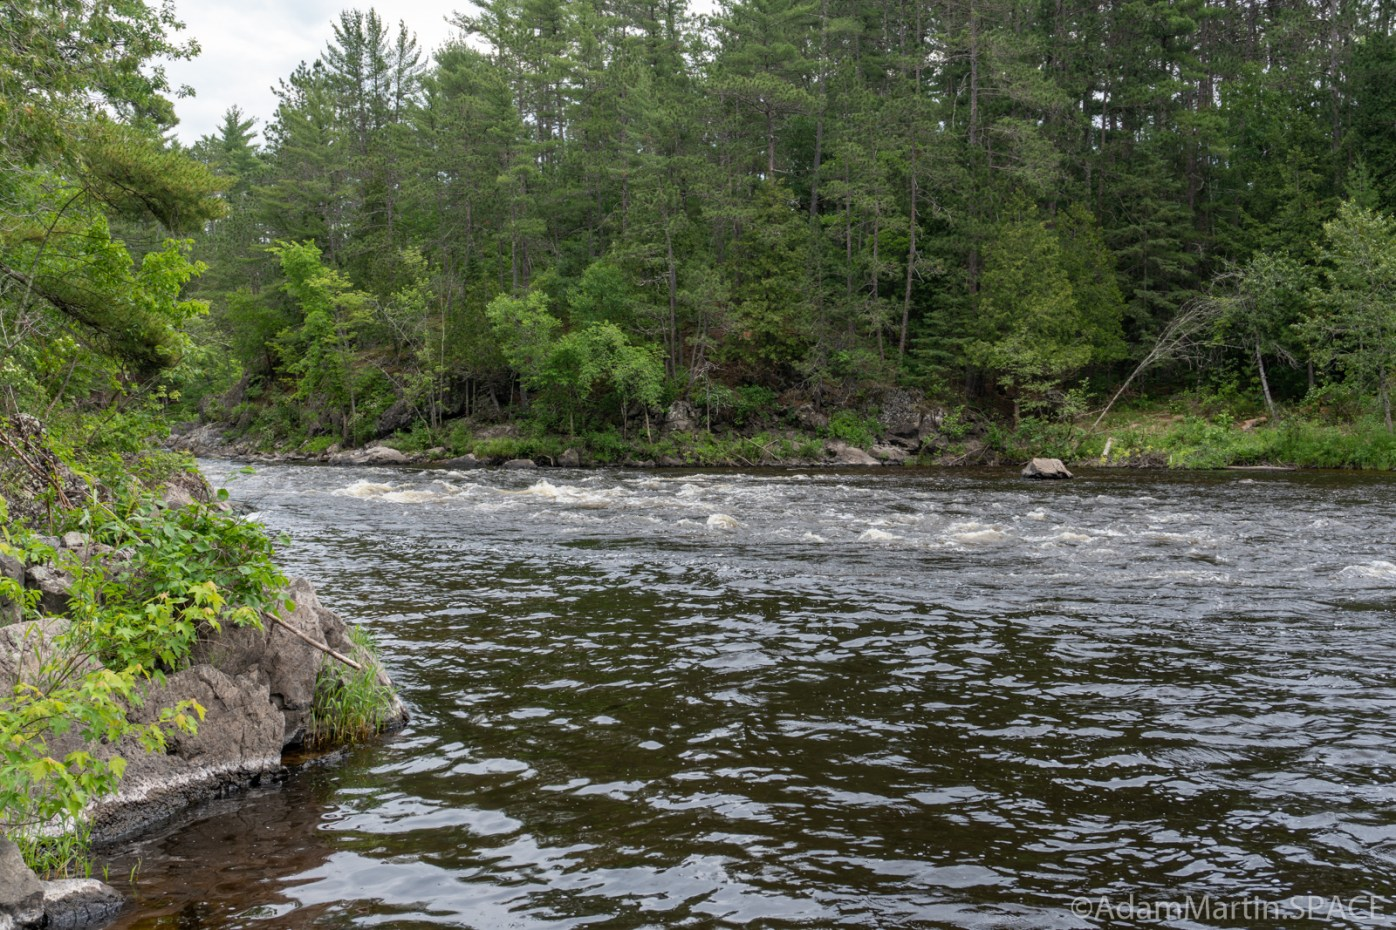 Quiver Falls Rapids - Views downstream on Menominee River